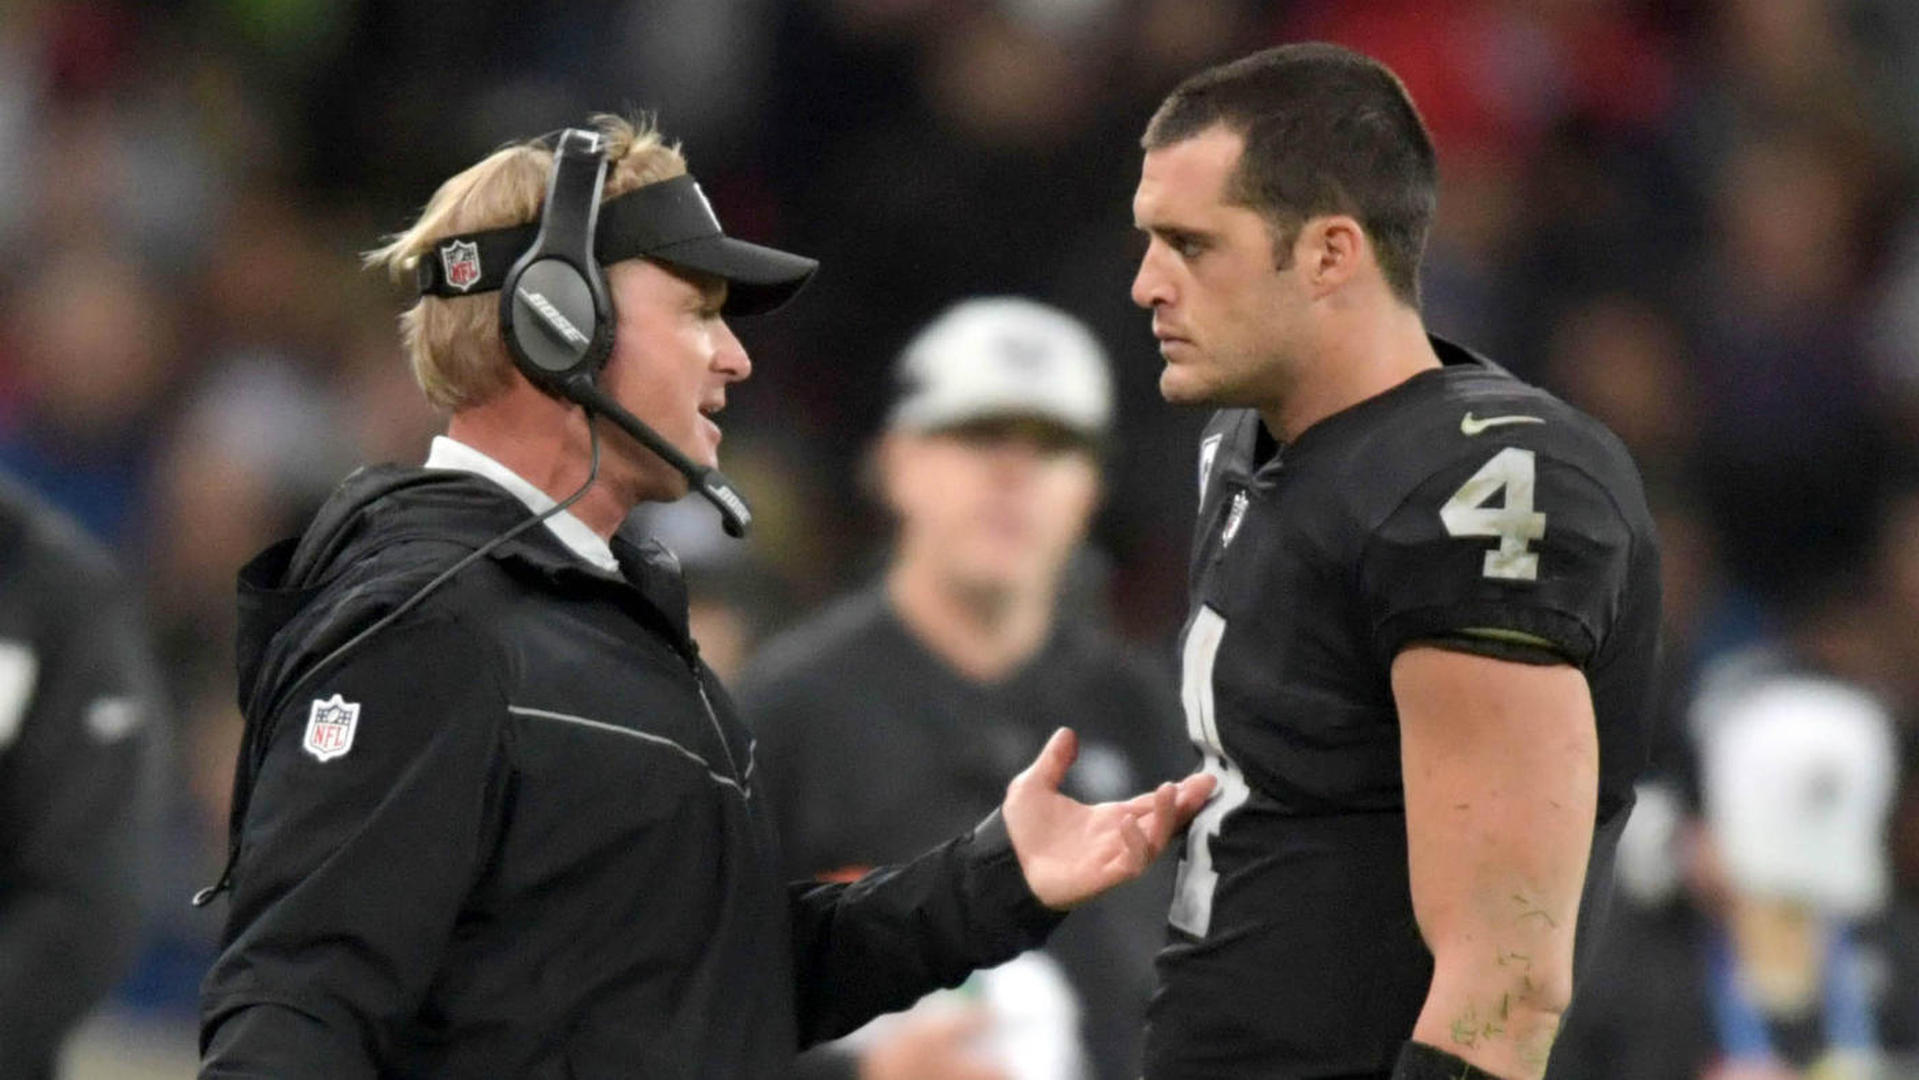 NFL Trade Rumors: Raiders making everyone available, how Derek Carr could land with Giants